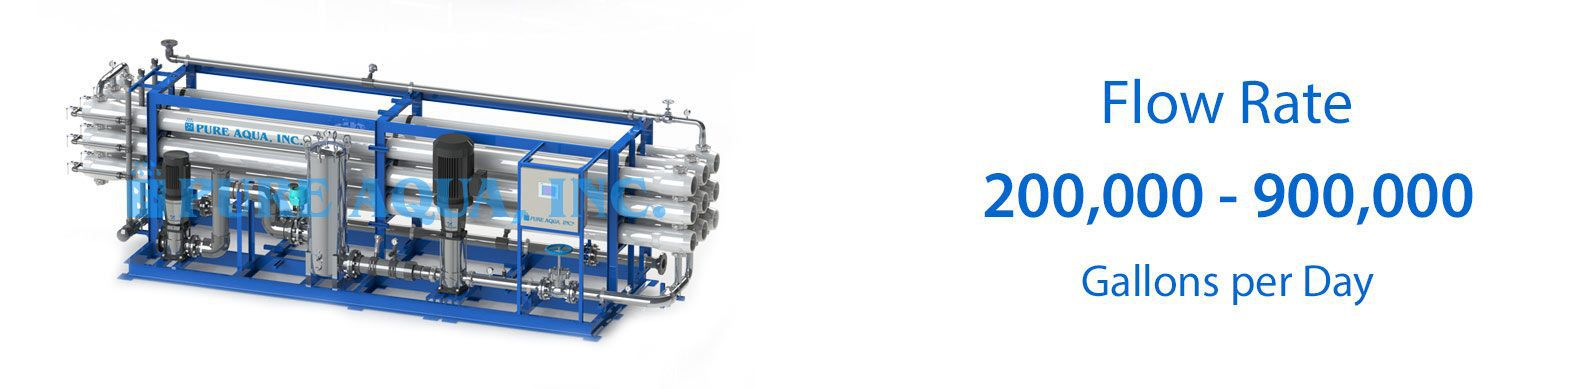 industrial brackish water reverse osmosis BWRO systems 200000-900000 gpd specifications